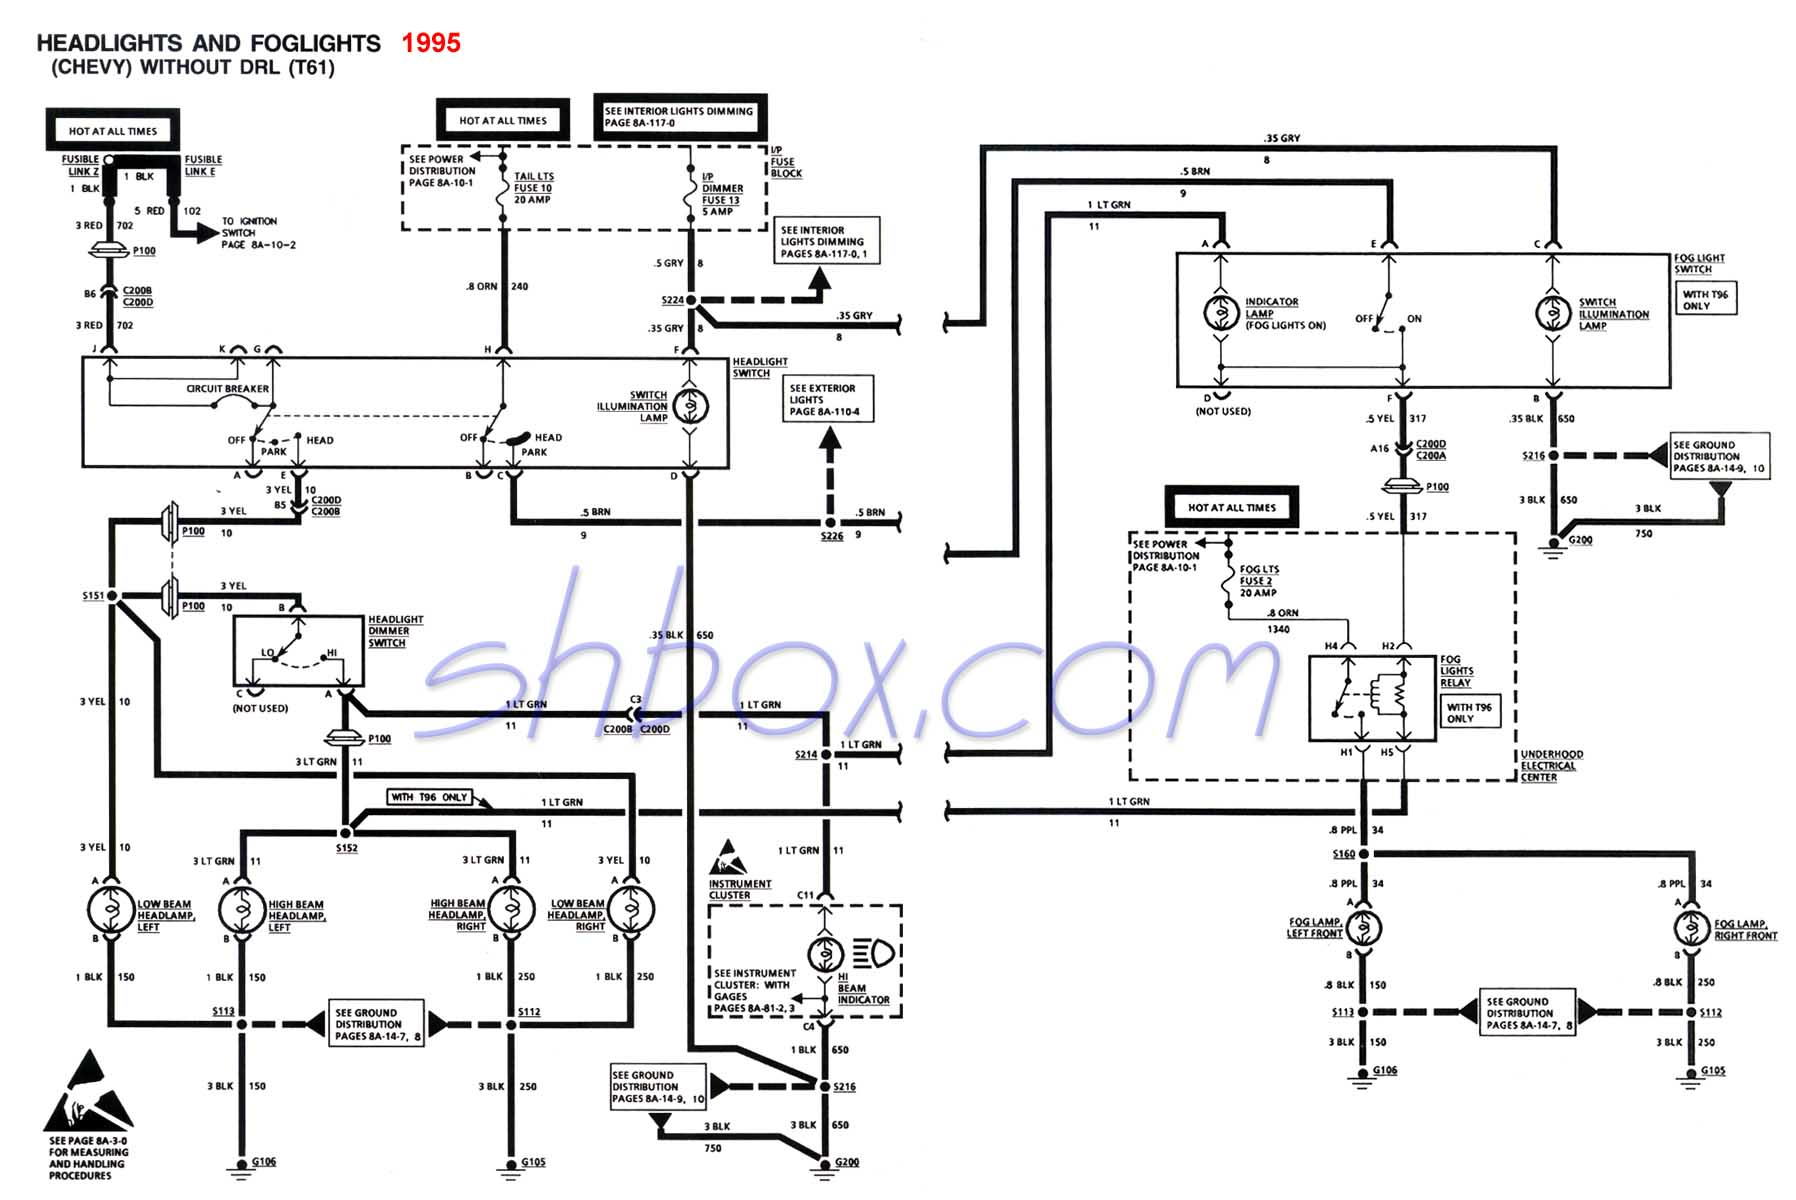 hight resolution of 2002 grand prix abs wiring harness diagram wiring library rh 55 skriptoase de 06 kia sportage starter wiring diagram 2002 chevy cavalier wheel speed sensor